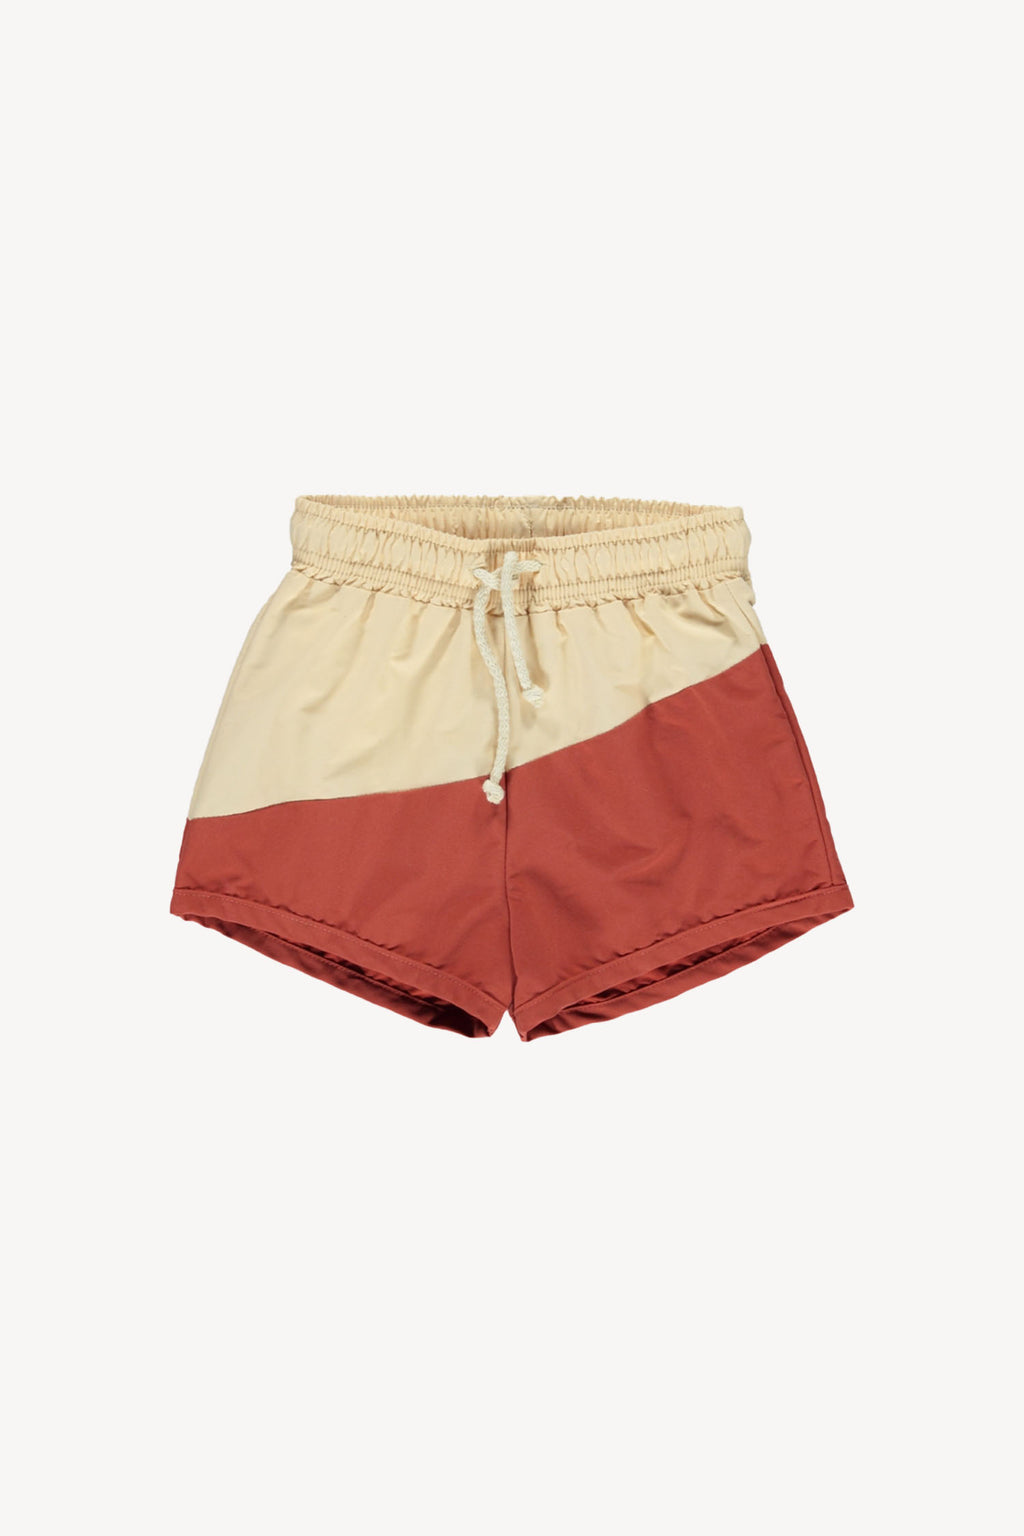 Fin and Vince - Board Shorts (Sorbet) - Last 6/12